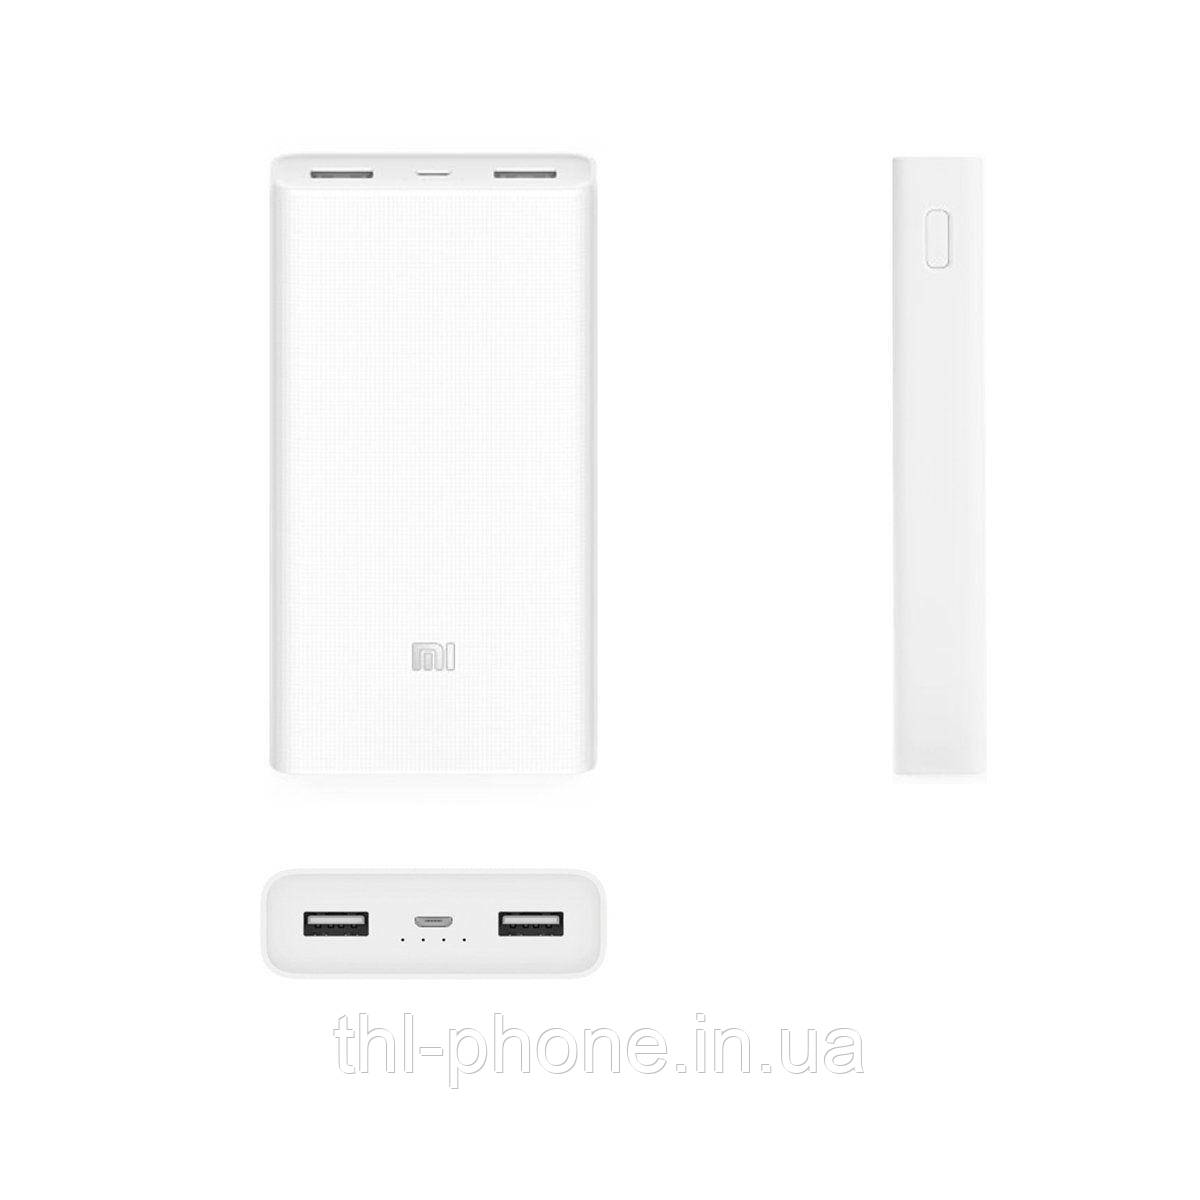 Внешний аккумулятор (Power Bank) Power bank Xiaomi Mi 2C 20000 mAh VXN4212CN